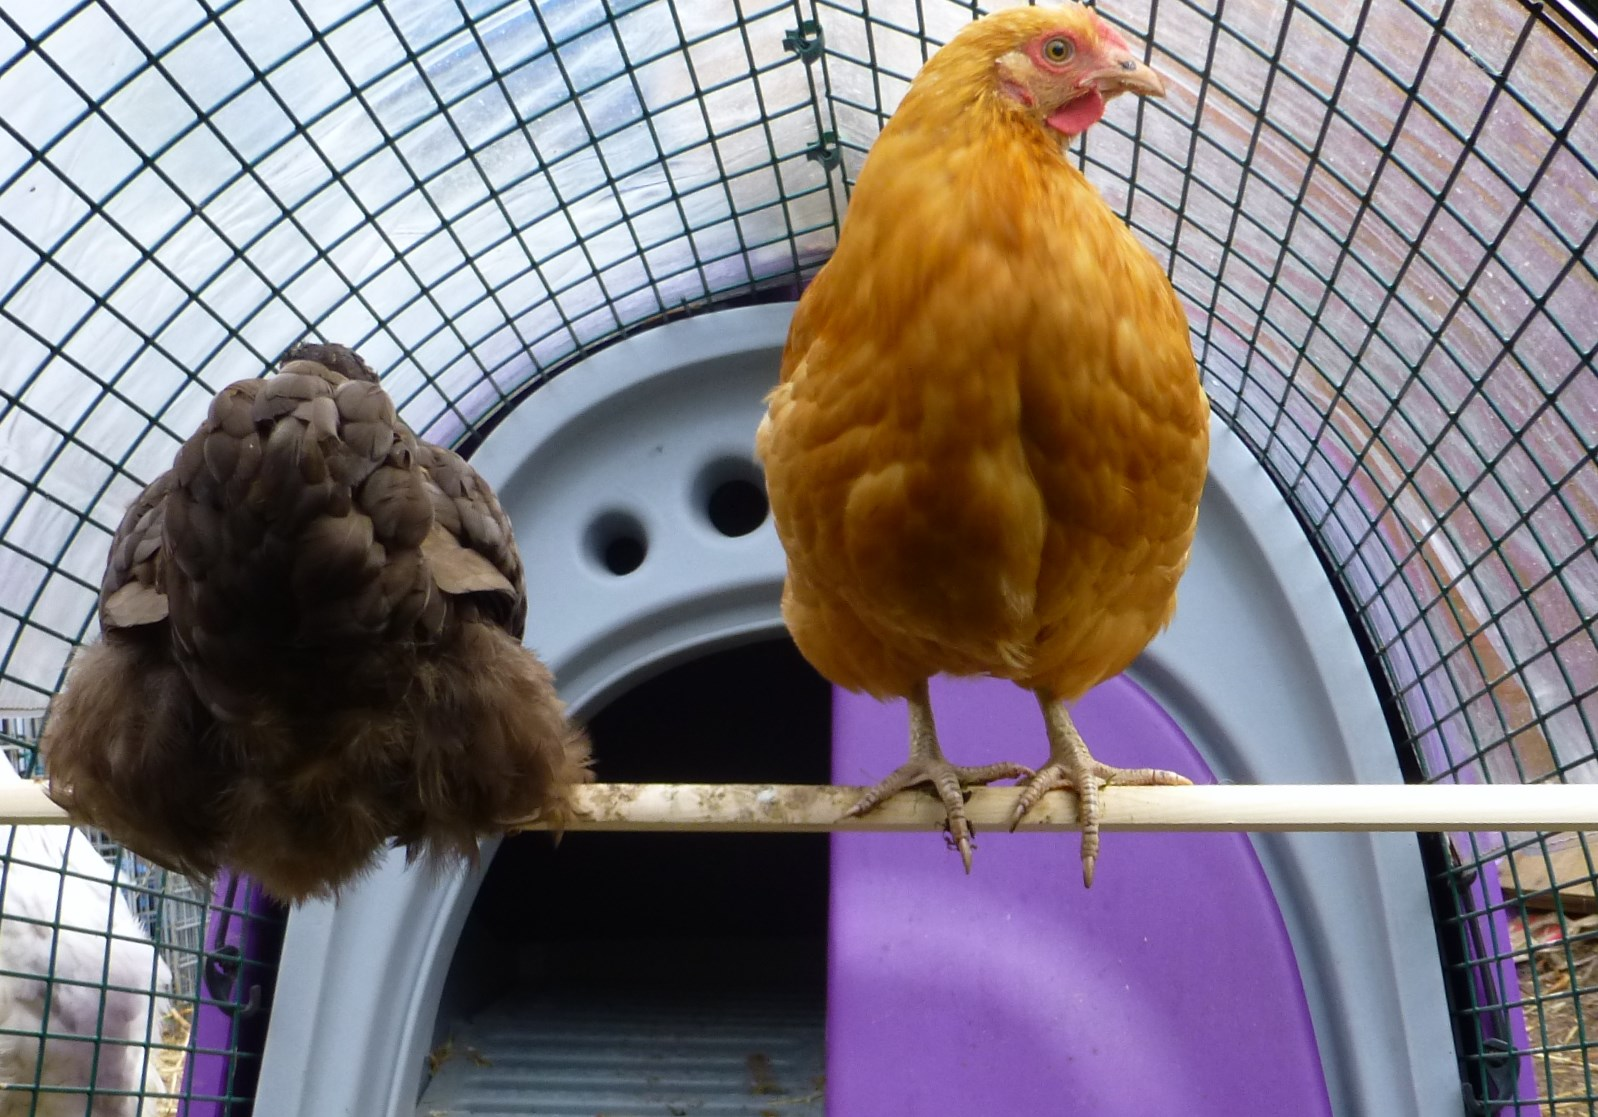 A Chocolate and a Buff Orpington roosting on a branch in their Eglu Run